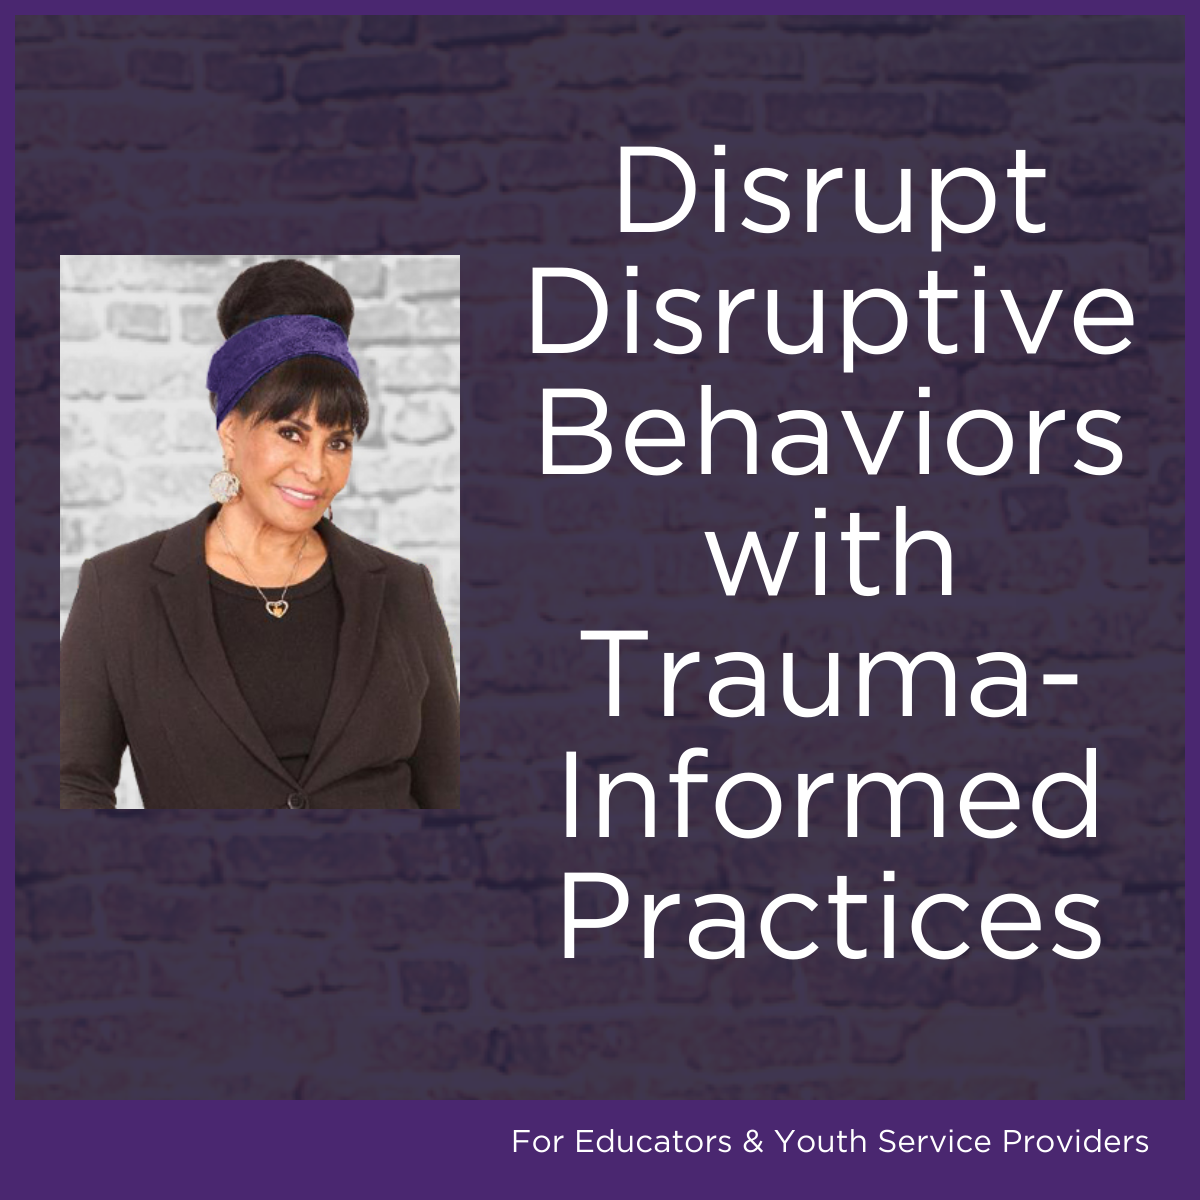 Disrupt Disruptive Behaviors With Trauma-Informed Practices